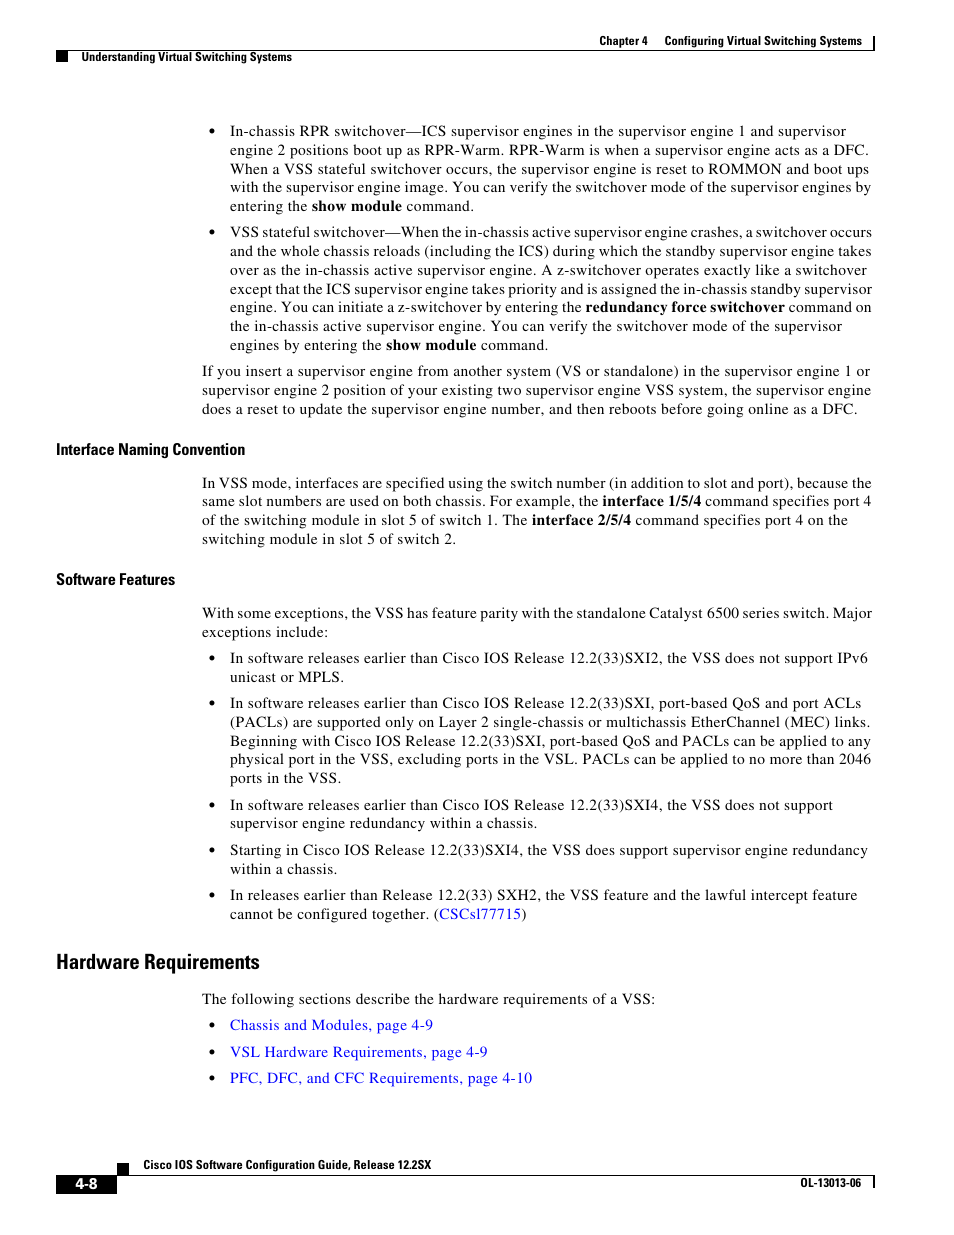 Hardware requirements | Cisco 6500 User Manual | Page 8 / 72